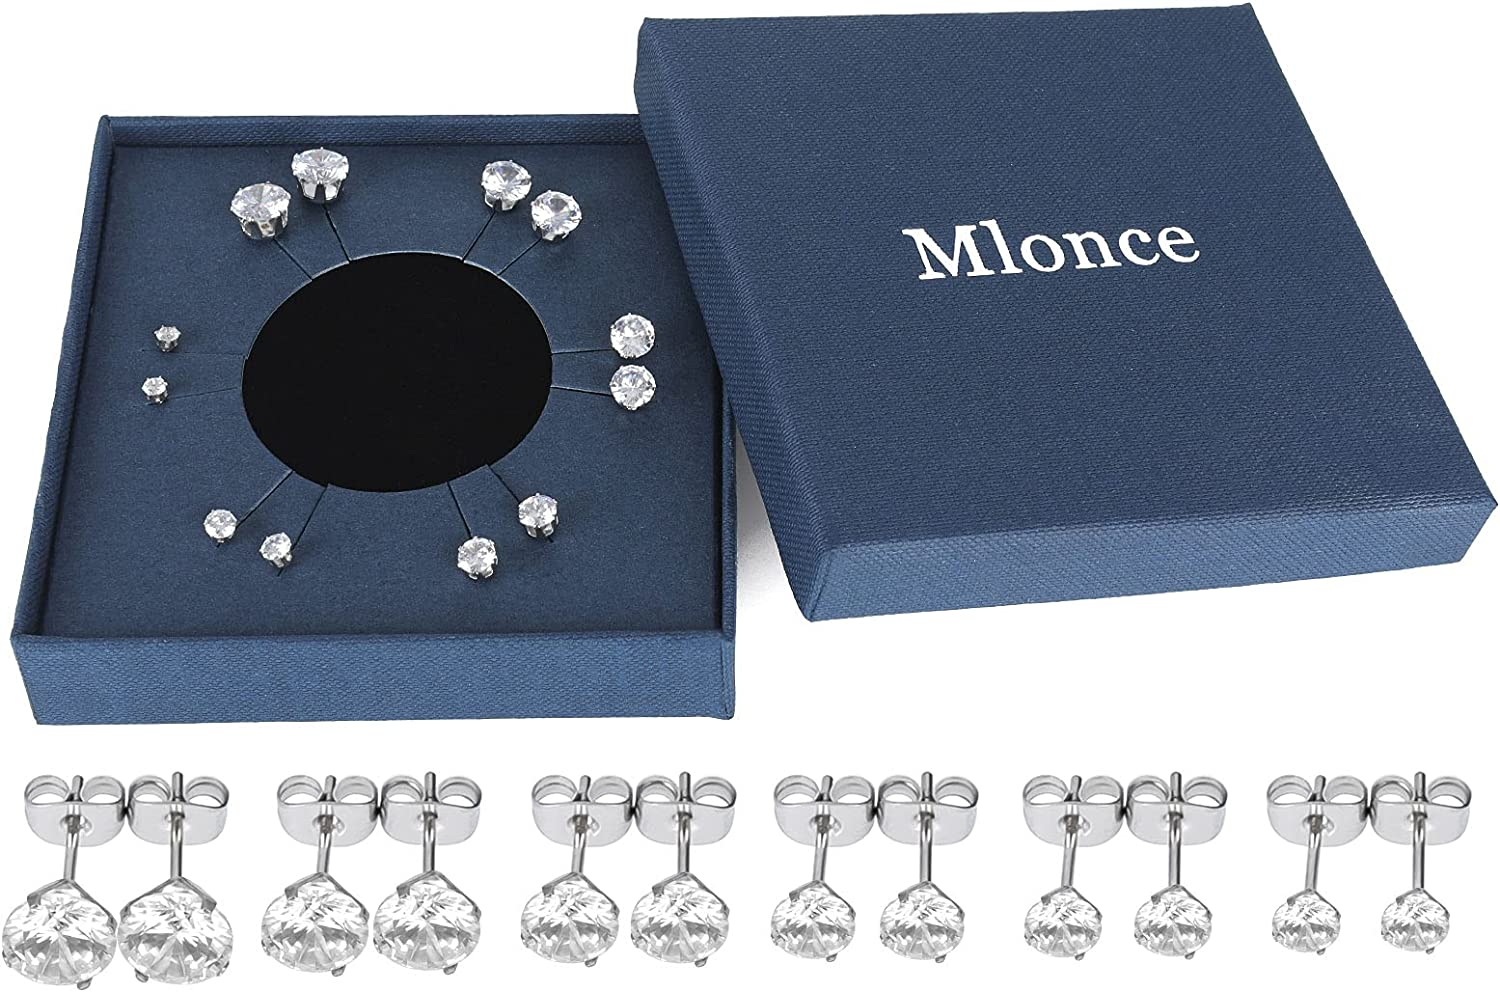 Mlonce Stainless Steel Stud Earrings Round Clear Cubic Zirconia Ear Studs for Women and Men Sensitive Ears Nickel Free CZ Stud Earrings Set Hypoallergenic, 6 Pairs 6-claw or 4-claw